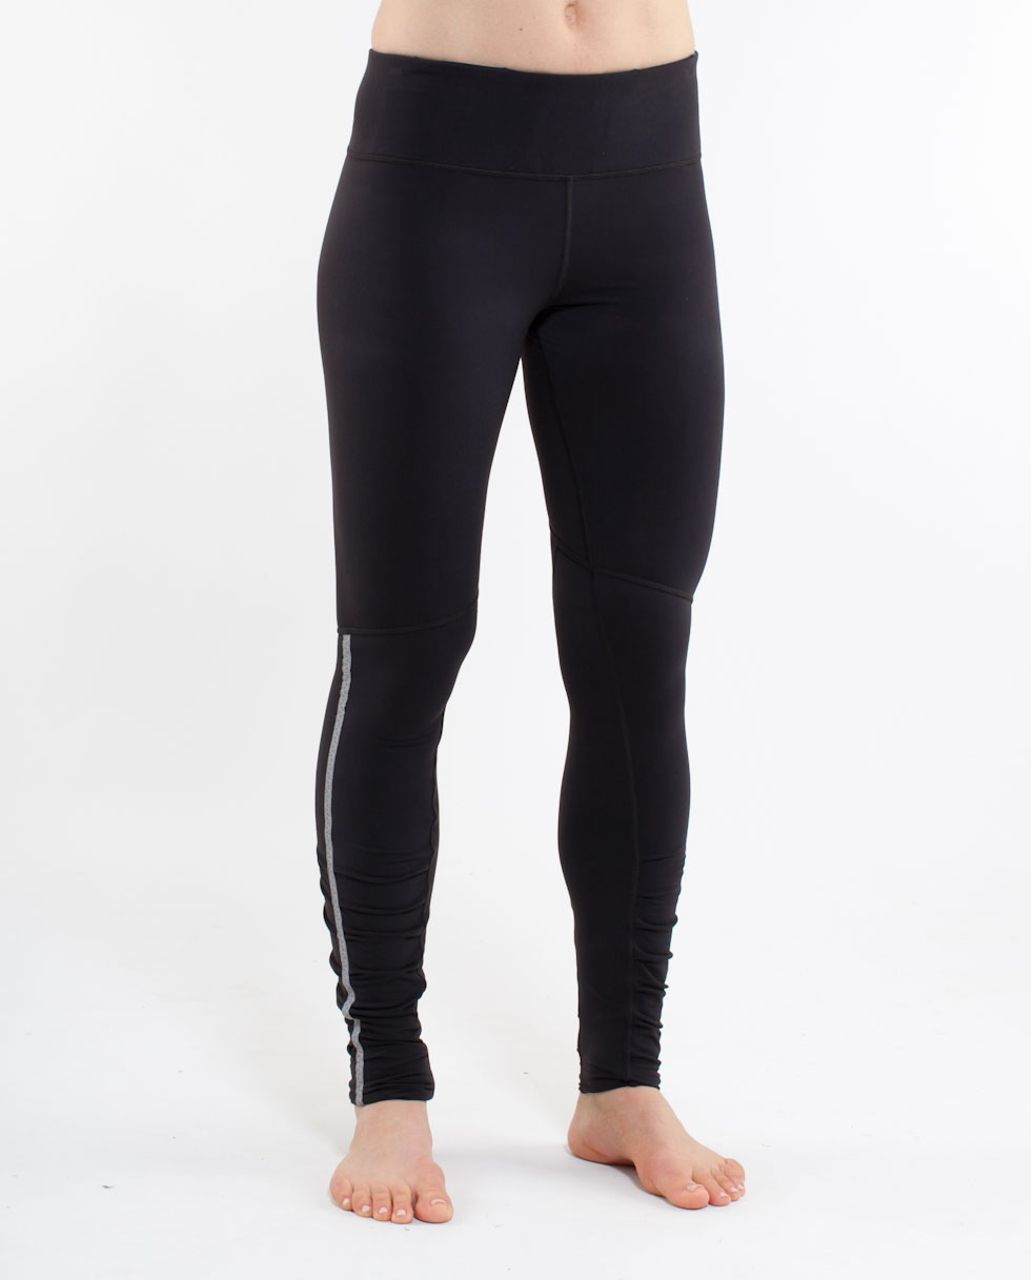 Lululemon Run:  Stay On Course Tight - Black